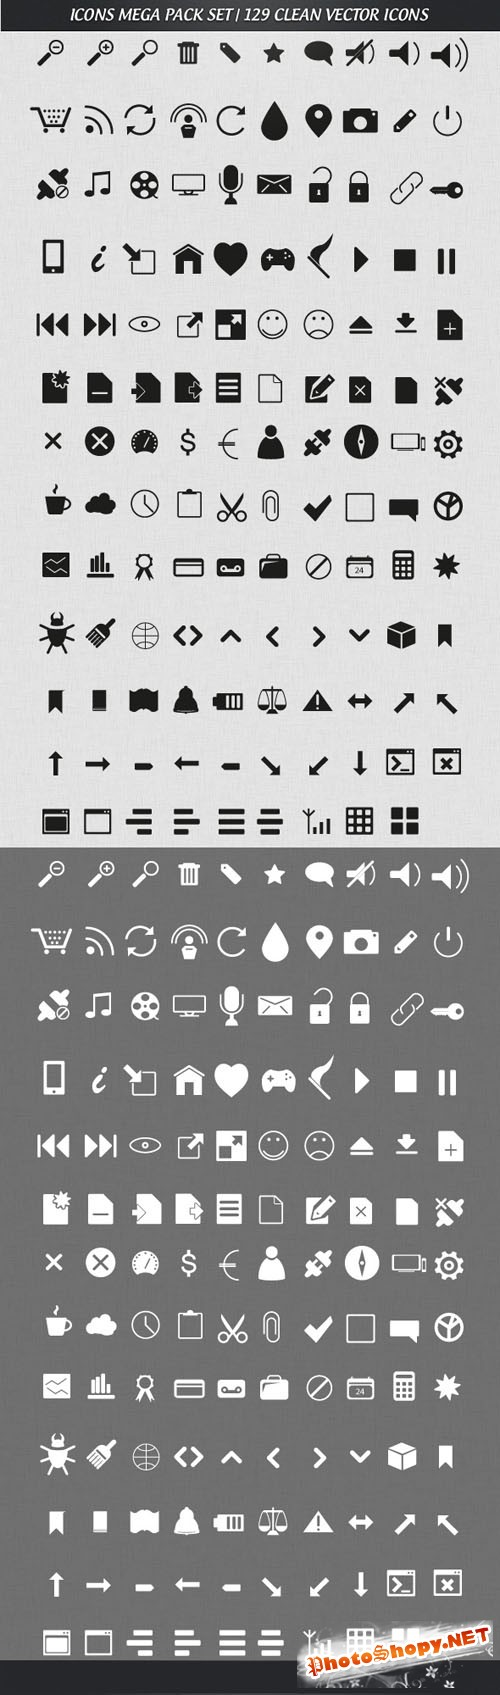 129 Clean Vector Icons Mega Pack